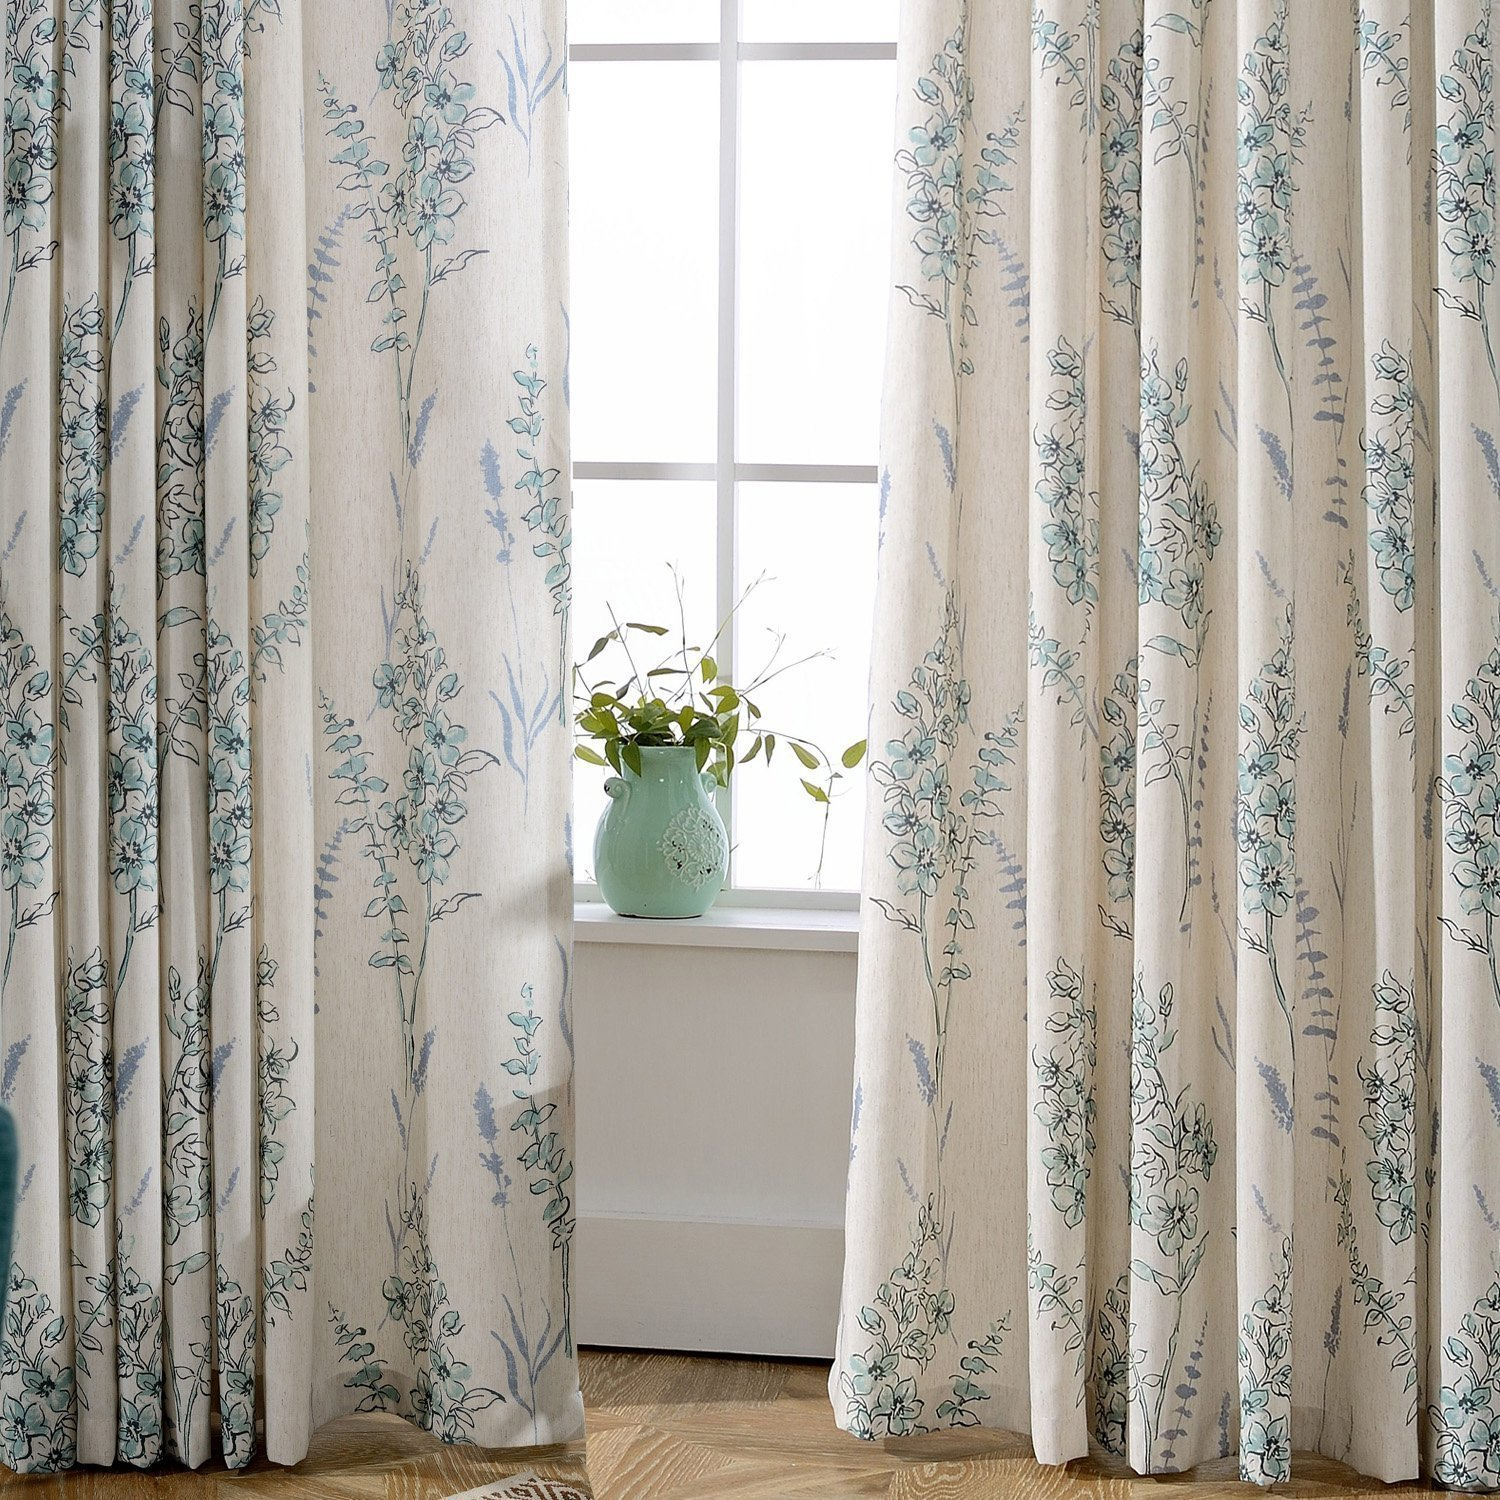 Cheap Curtains And Drapes For Living Room Find Curtains And